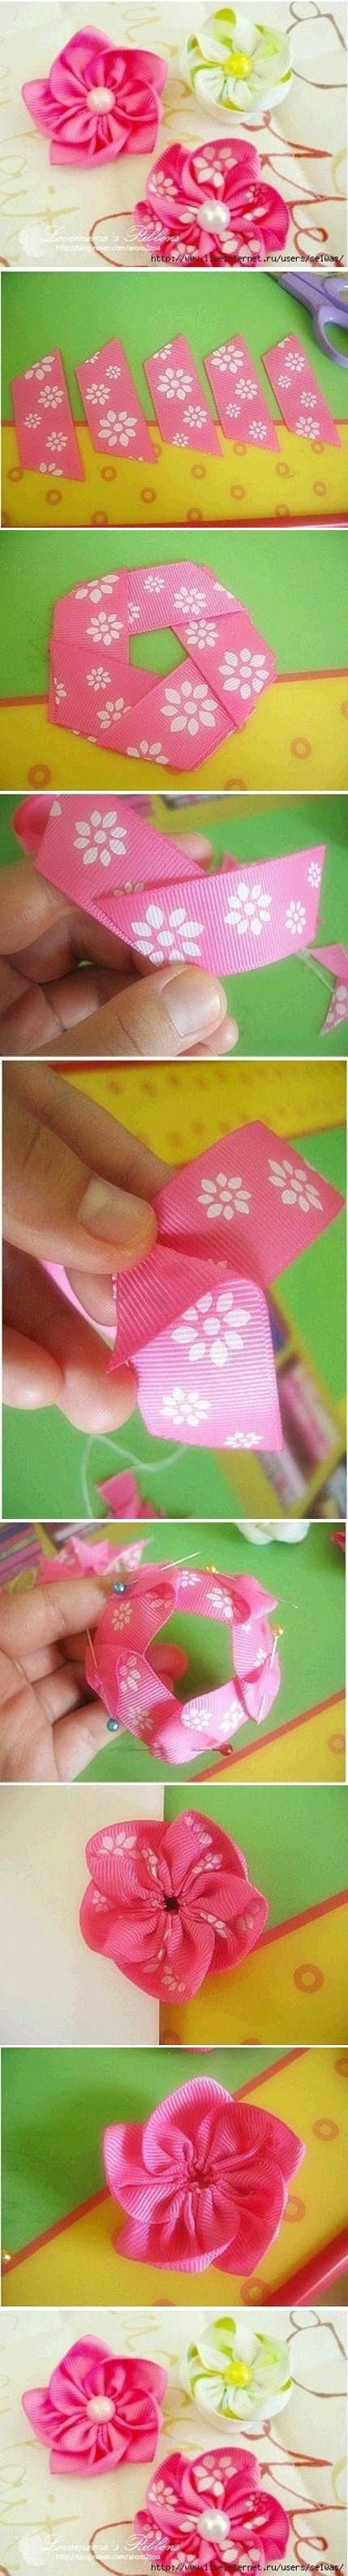 DIY Tape Flowers Pictures, Photos, and Images for Facebook, Tumblr, Pinterest, and Twitter